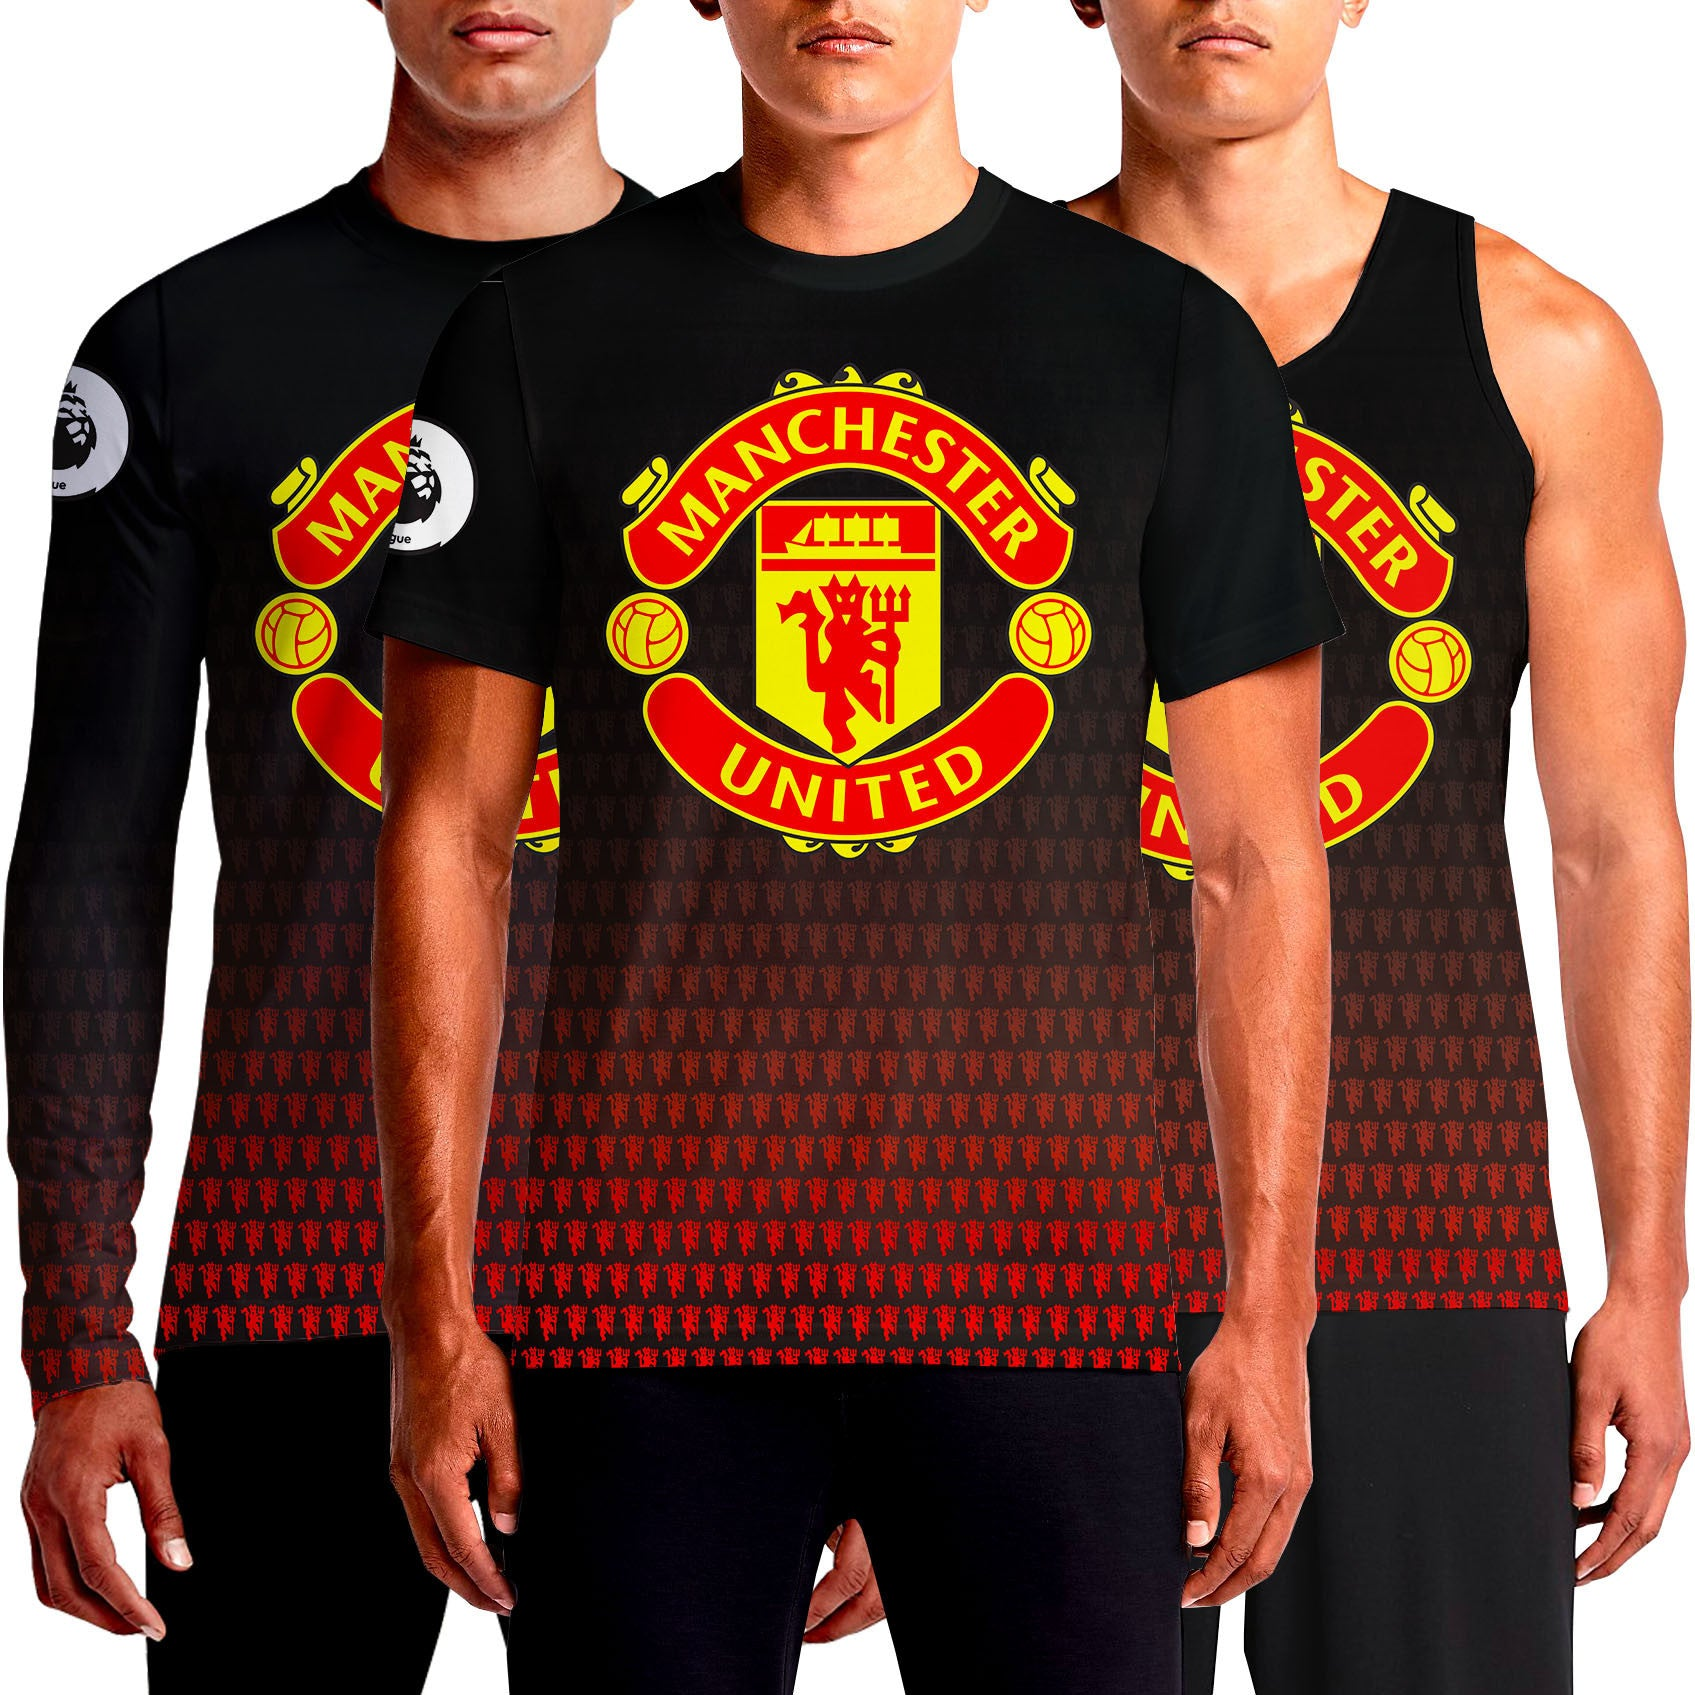 reputable site a474d 32a15 manchester united jersey buy online